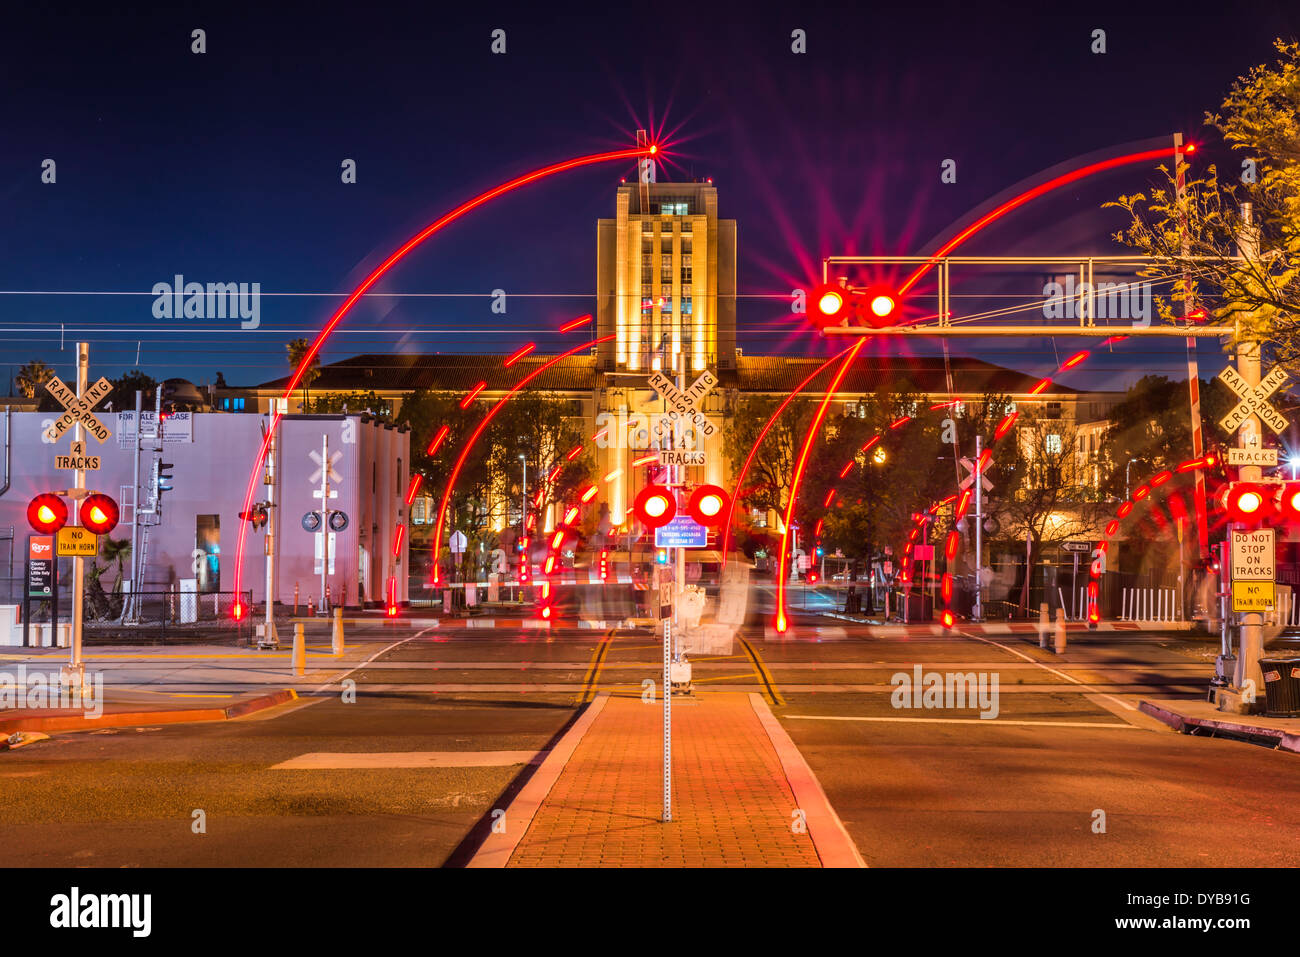 Blurred train crossing lights san diego county administration blurred train crossing lights san diego county administration center building in the background san diego california arubaitofo Image collections